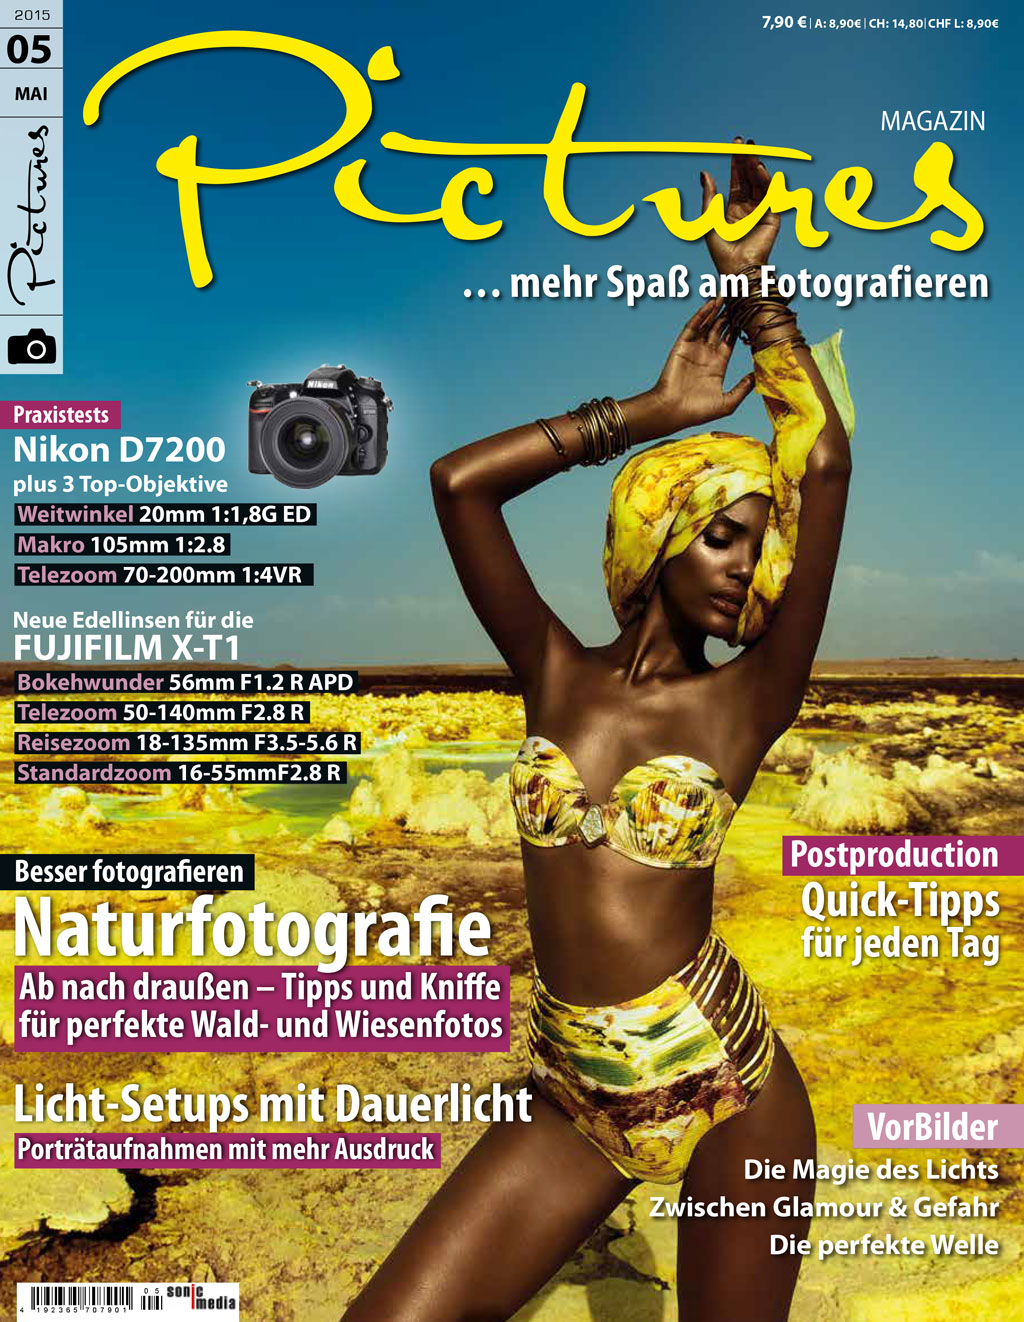 Pictures Magazin 5/2015